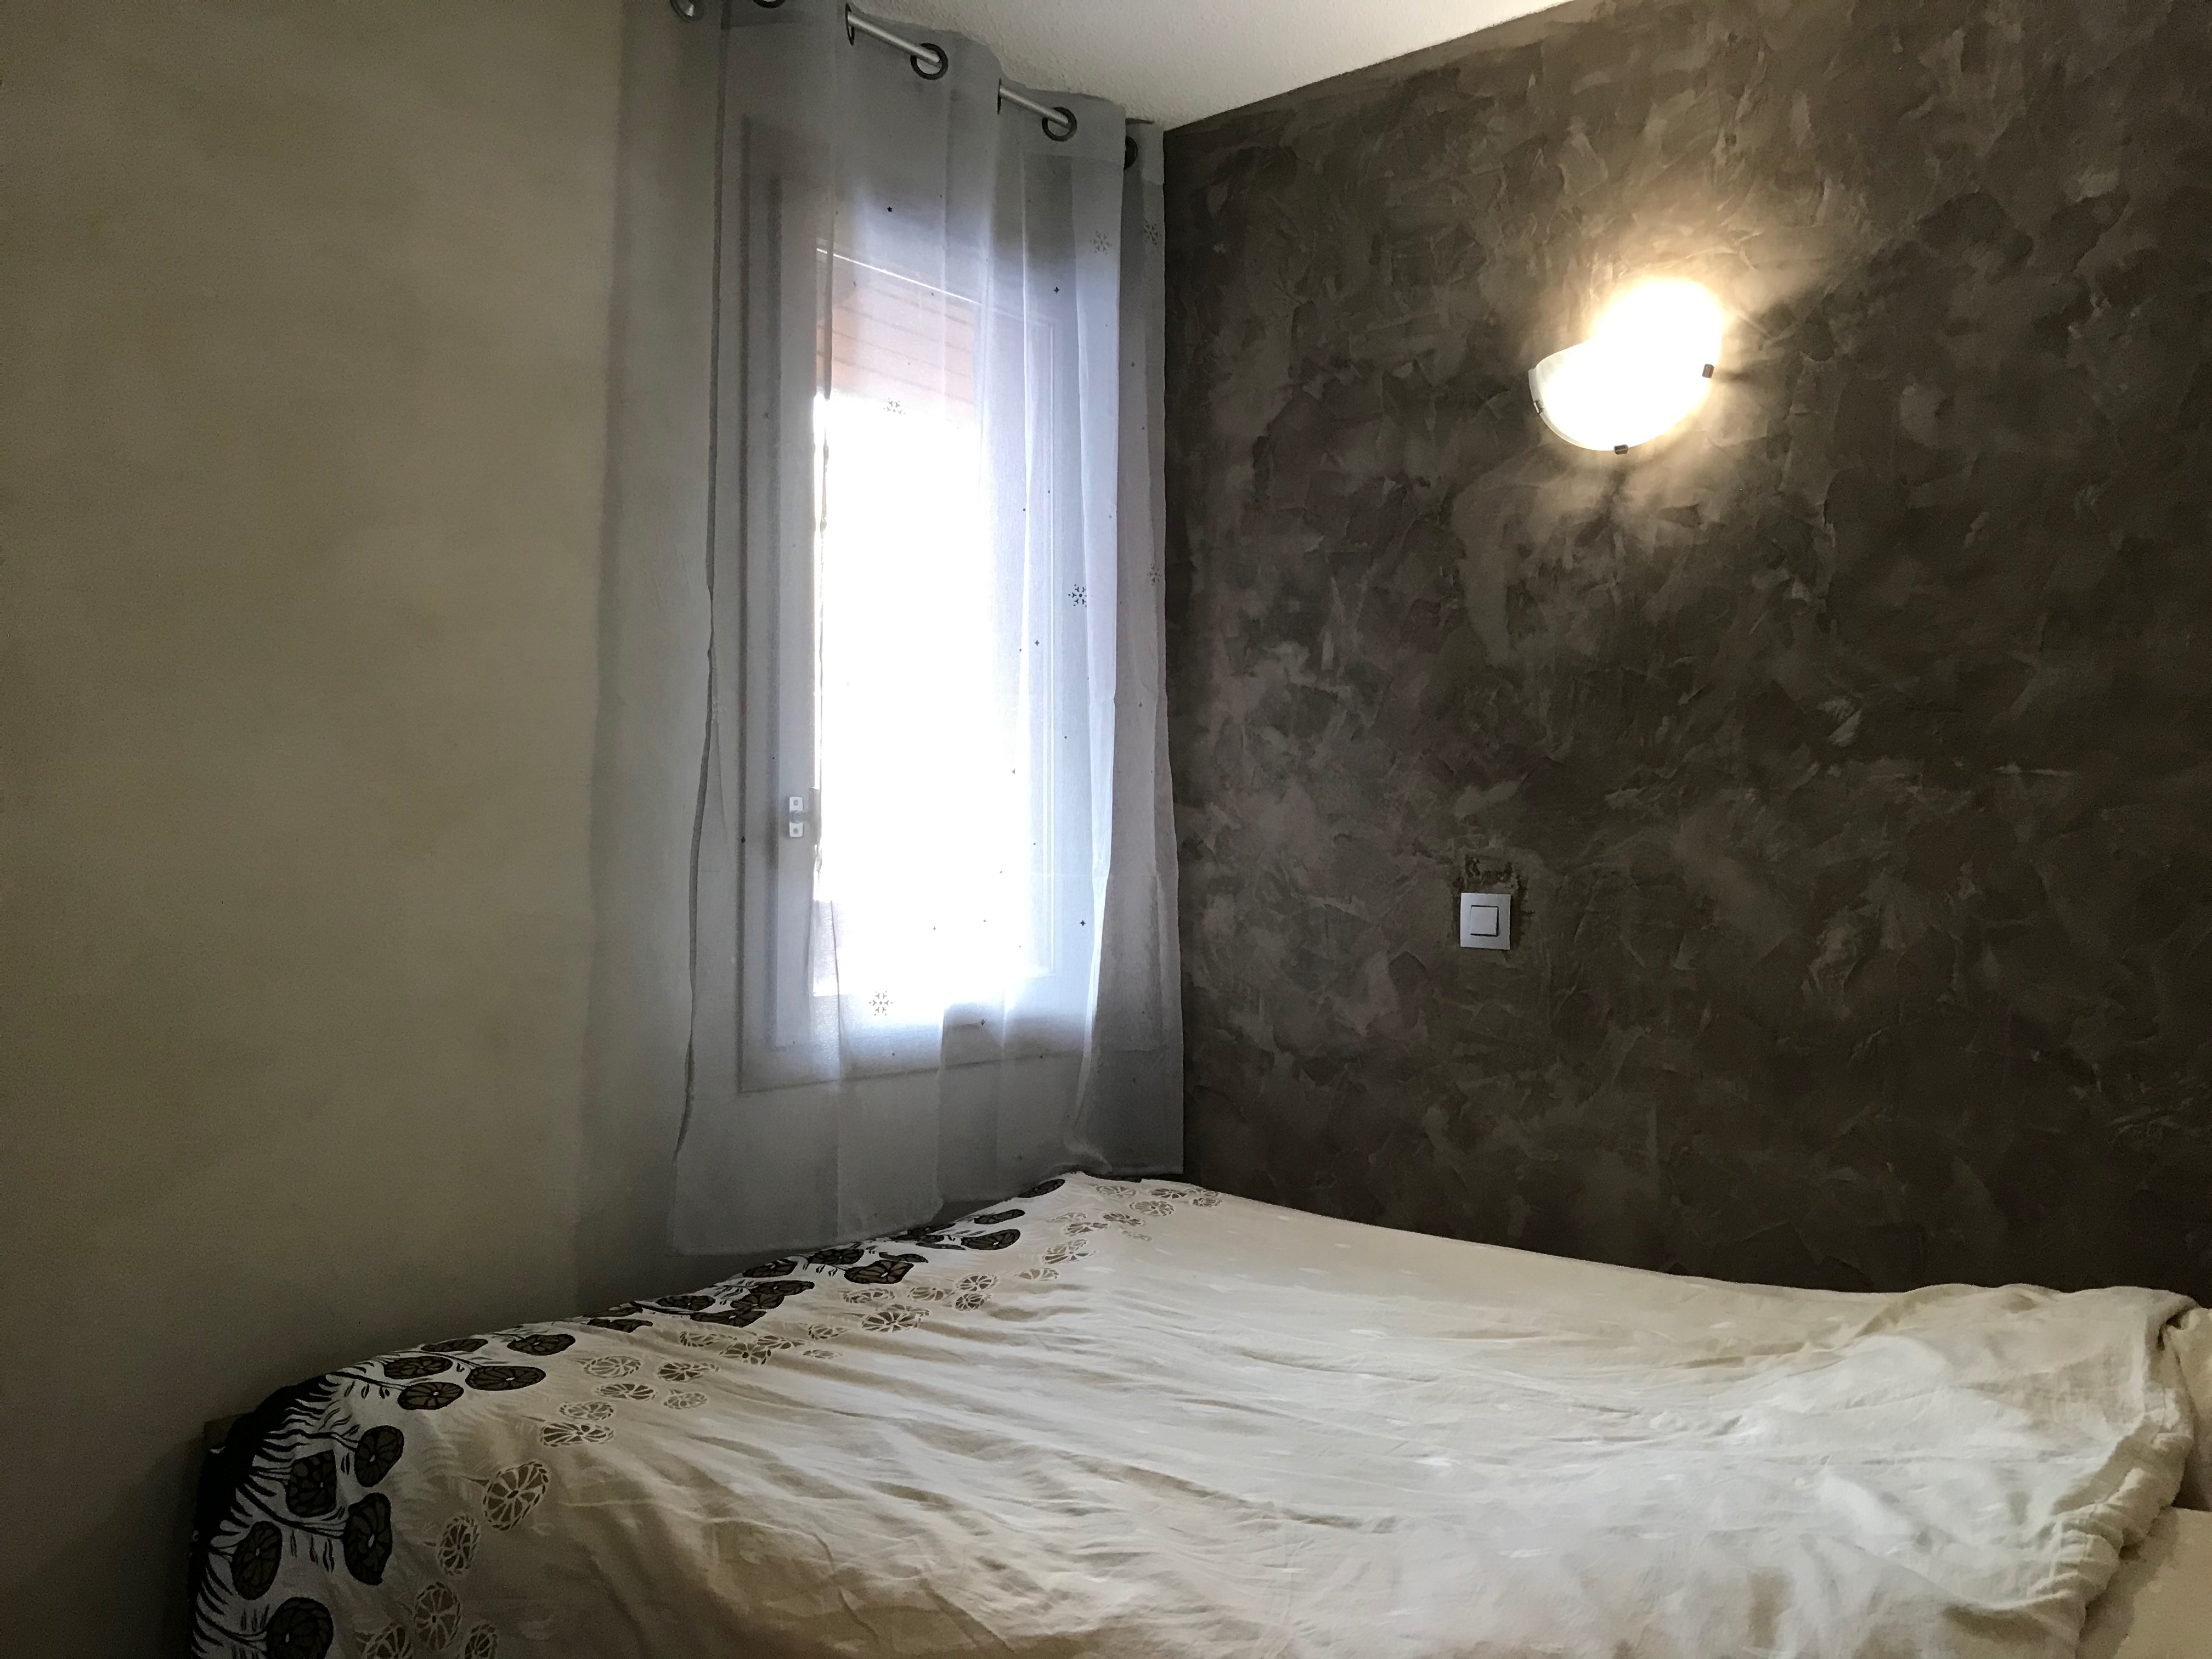 Location Mont chavin les coches : Chambre double